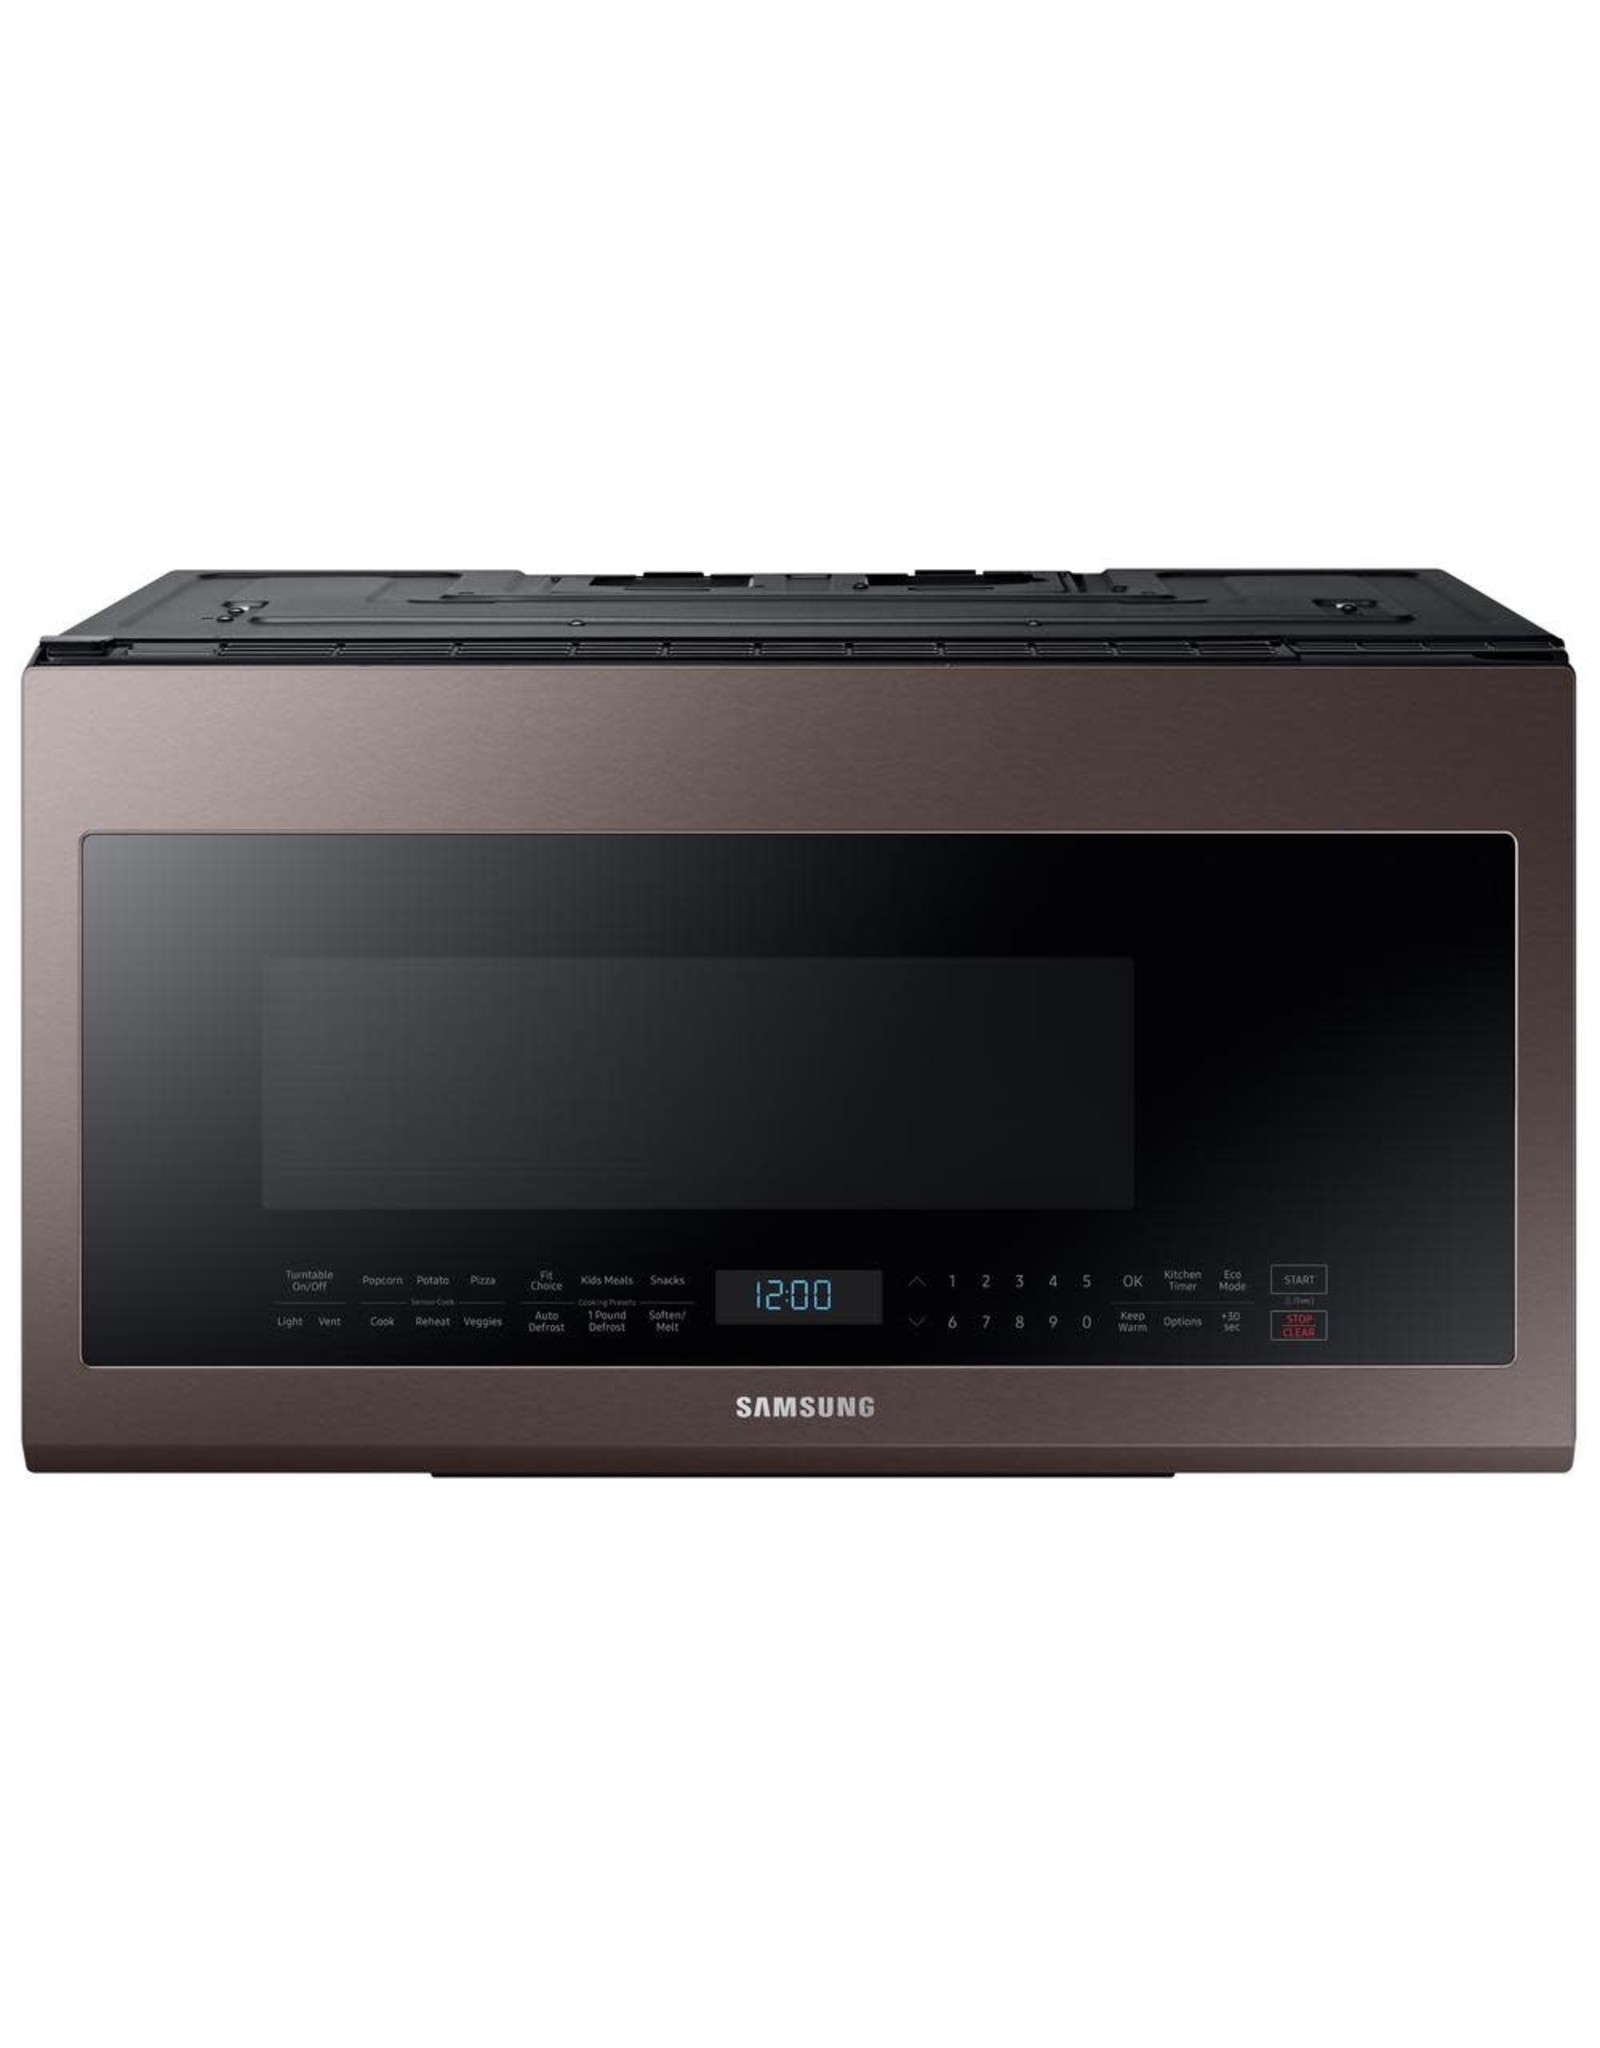 SAMSUNG ME21R706BAT Samsung 30 in. W 2.1 cu. ft. Over the Range Microwave in Fingerprint Resistant Tuscan Stainless Steel with Sensor Cooking